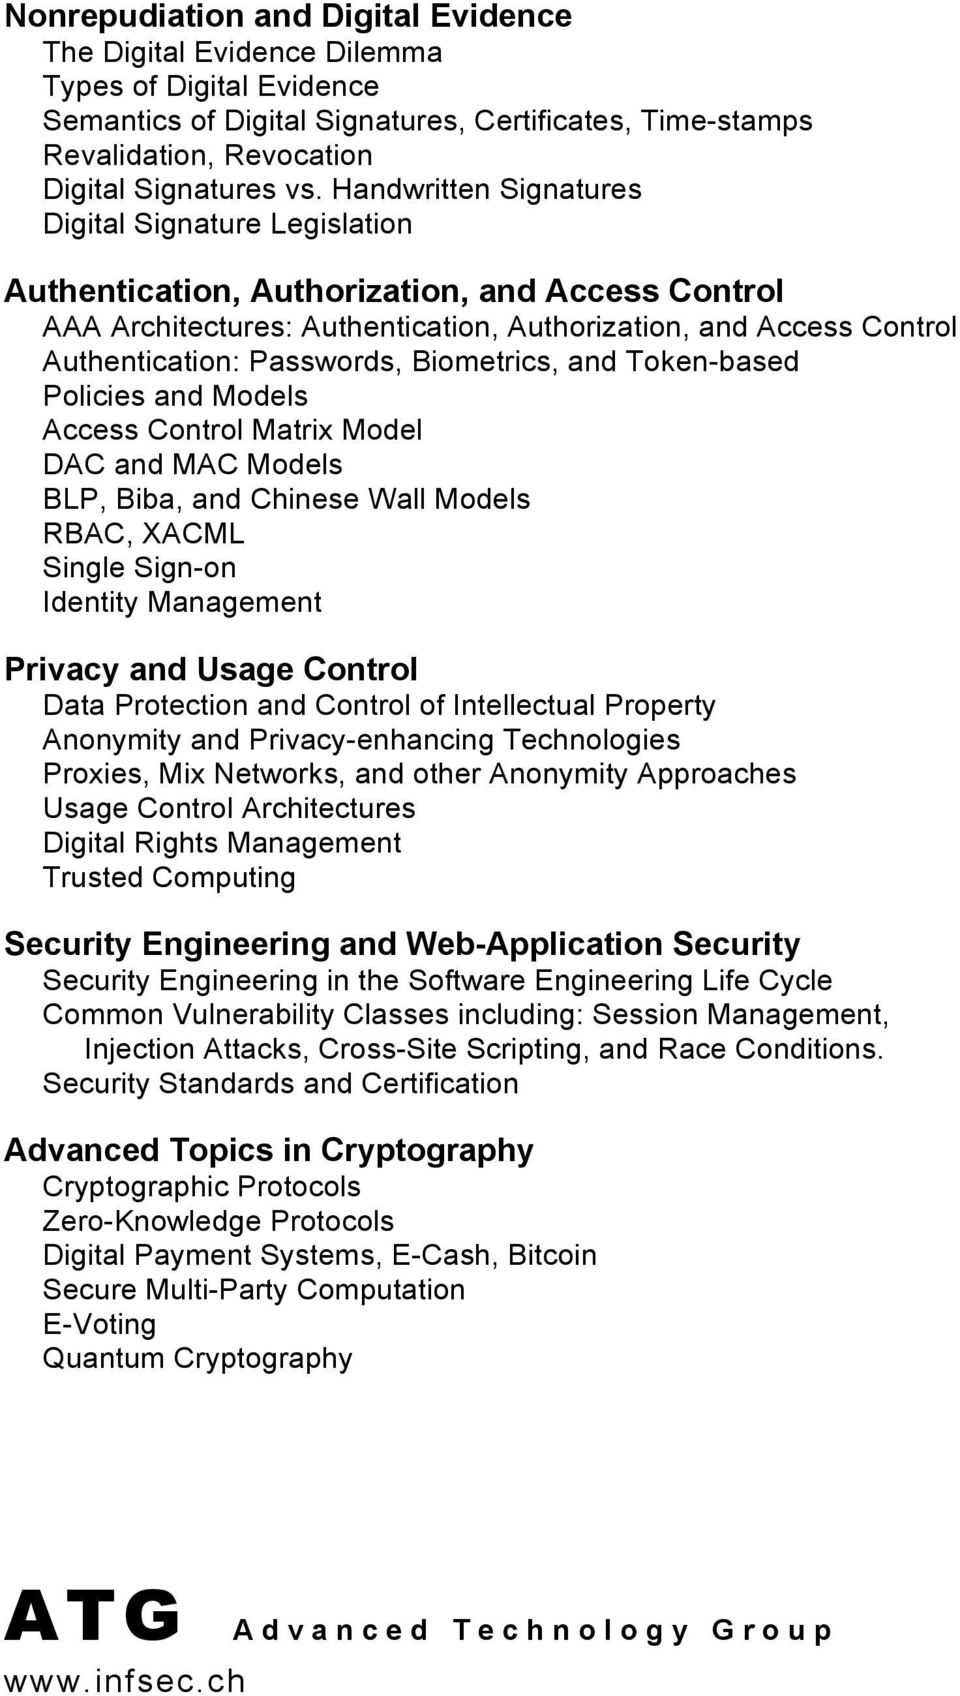 Biometrics, and Token-based Policies and Models Access Control Matrix Model DAC and MAC Models BLP, Biba, and Chinese Wall Models RBAC, XACML Single Sign-on Identity Management Privacy and Usage